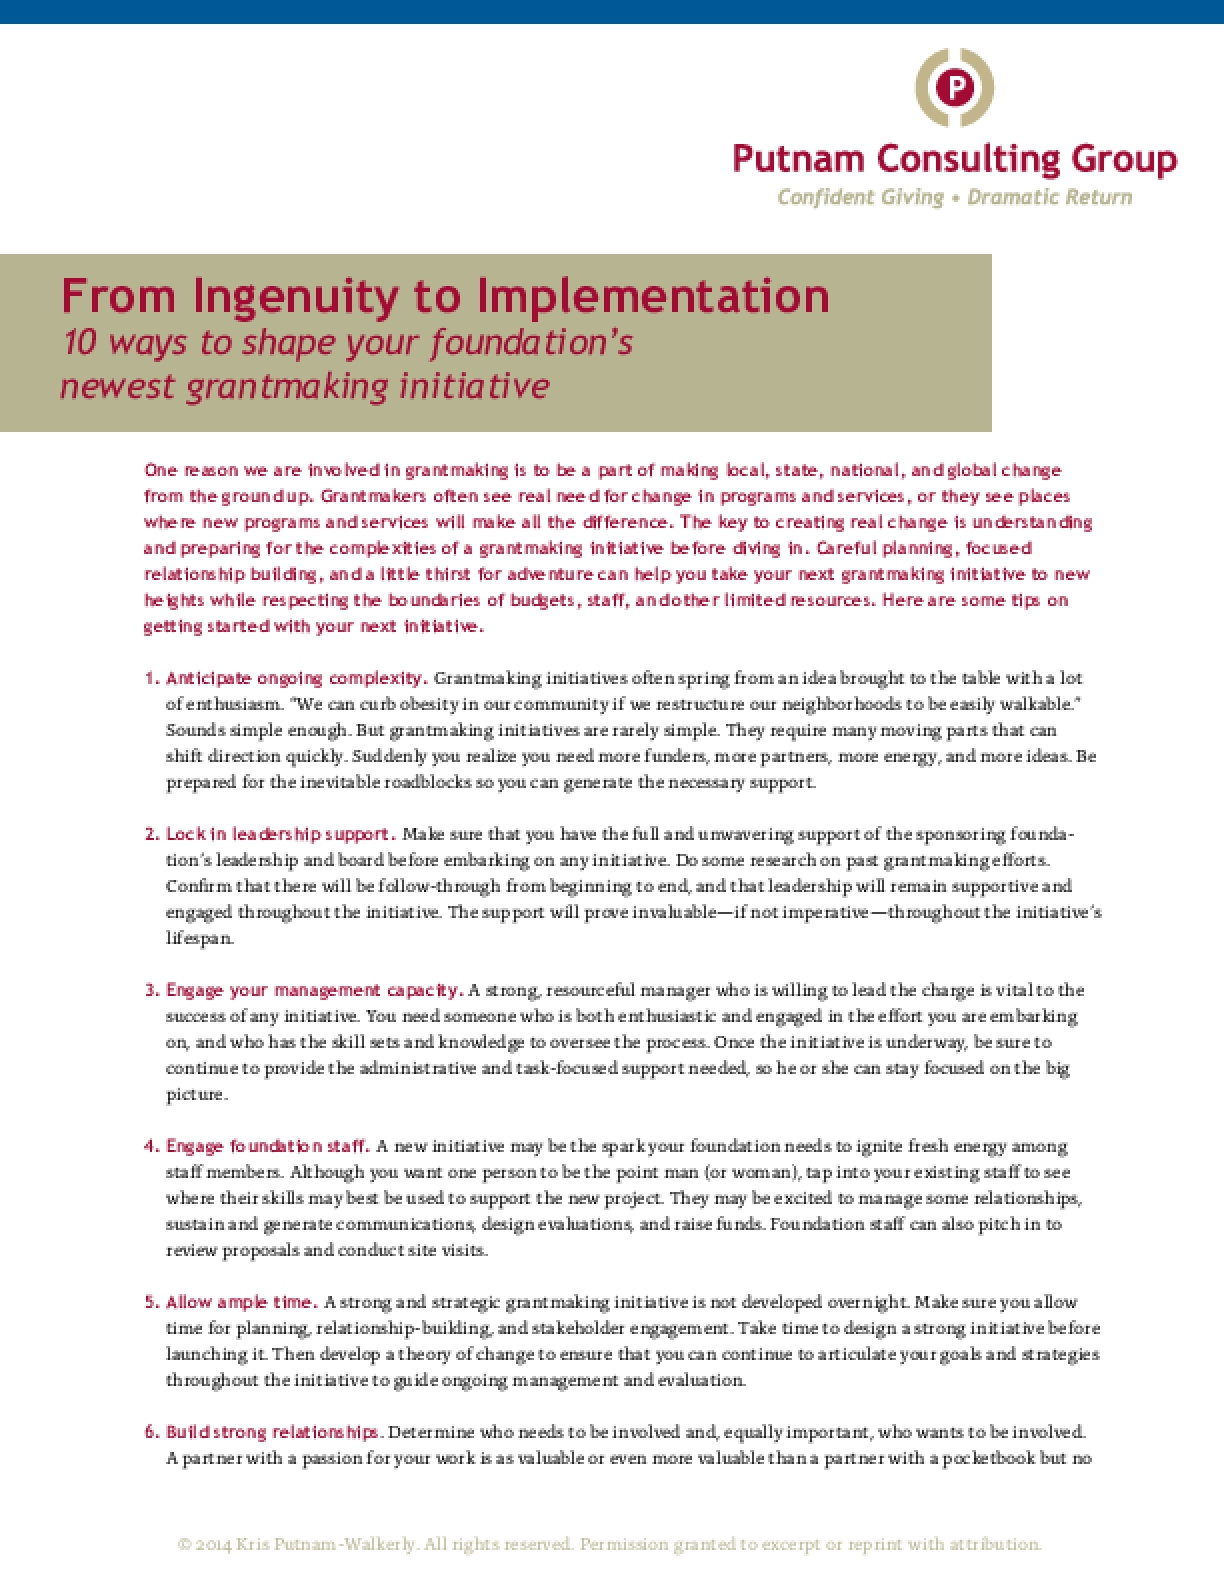 From Ingenuity to Implementation: 10 Ways To Shape Your Foundation's Newest Grantmaking Initiative